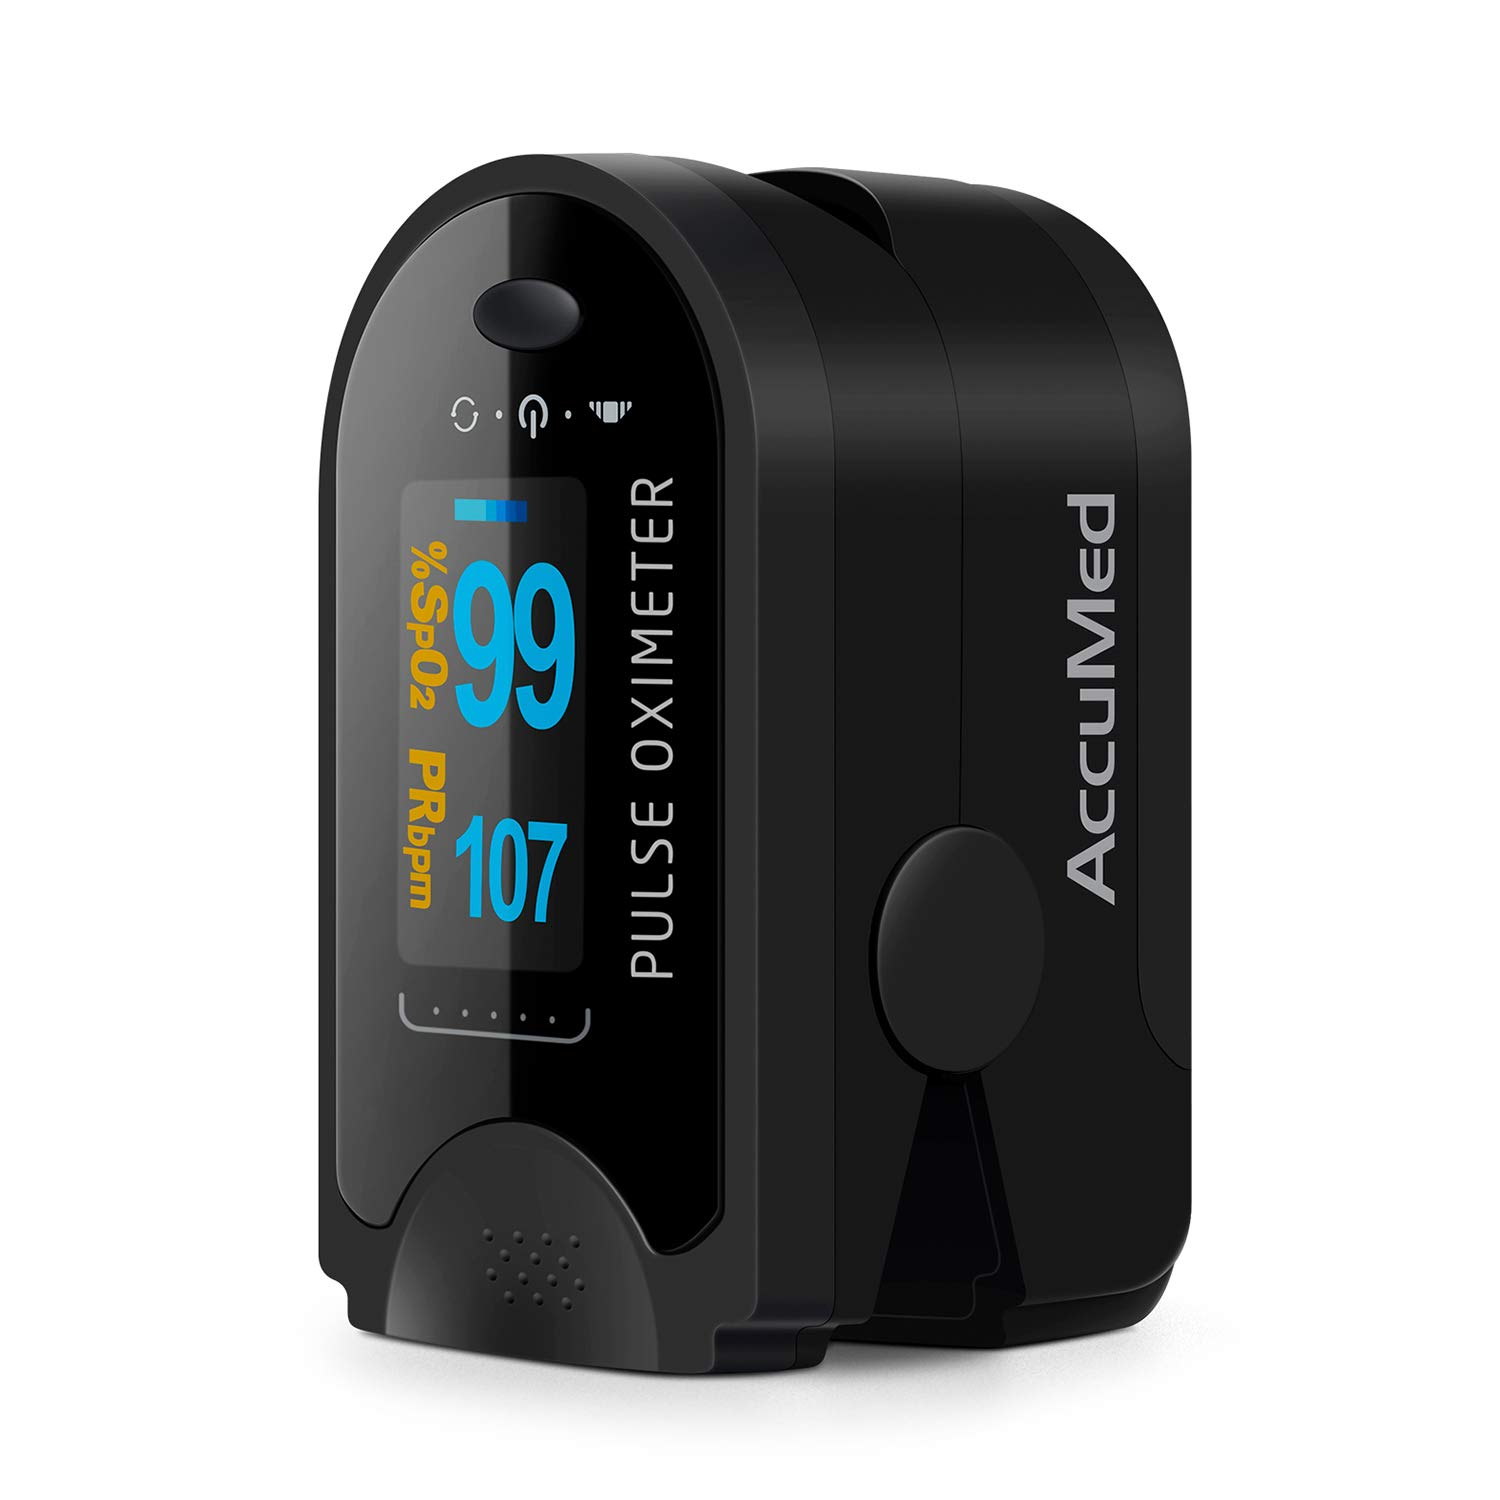 AccuMed CMS-50D Fingertip Pulse Oximeter Blood Oxygen Sensor SpO2 for Sports and Aviation. Portable and Lightweight with LED Display, 2 AAA Batteries, Lanyard and Travel Case (Black) by AccuMed